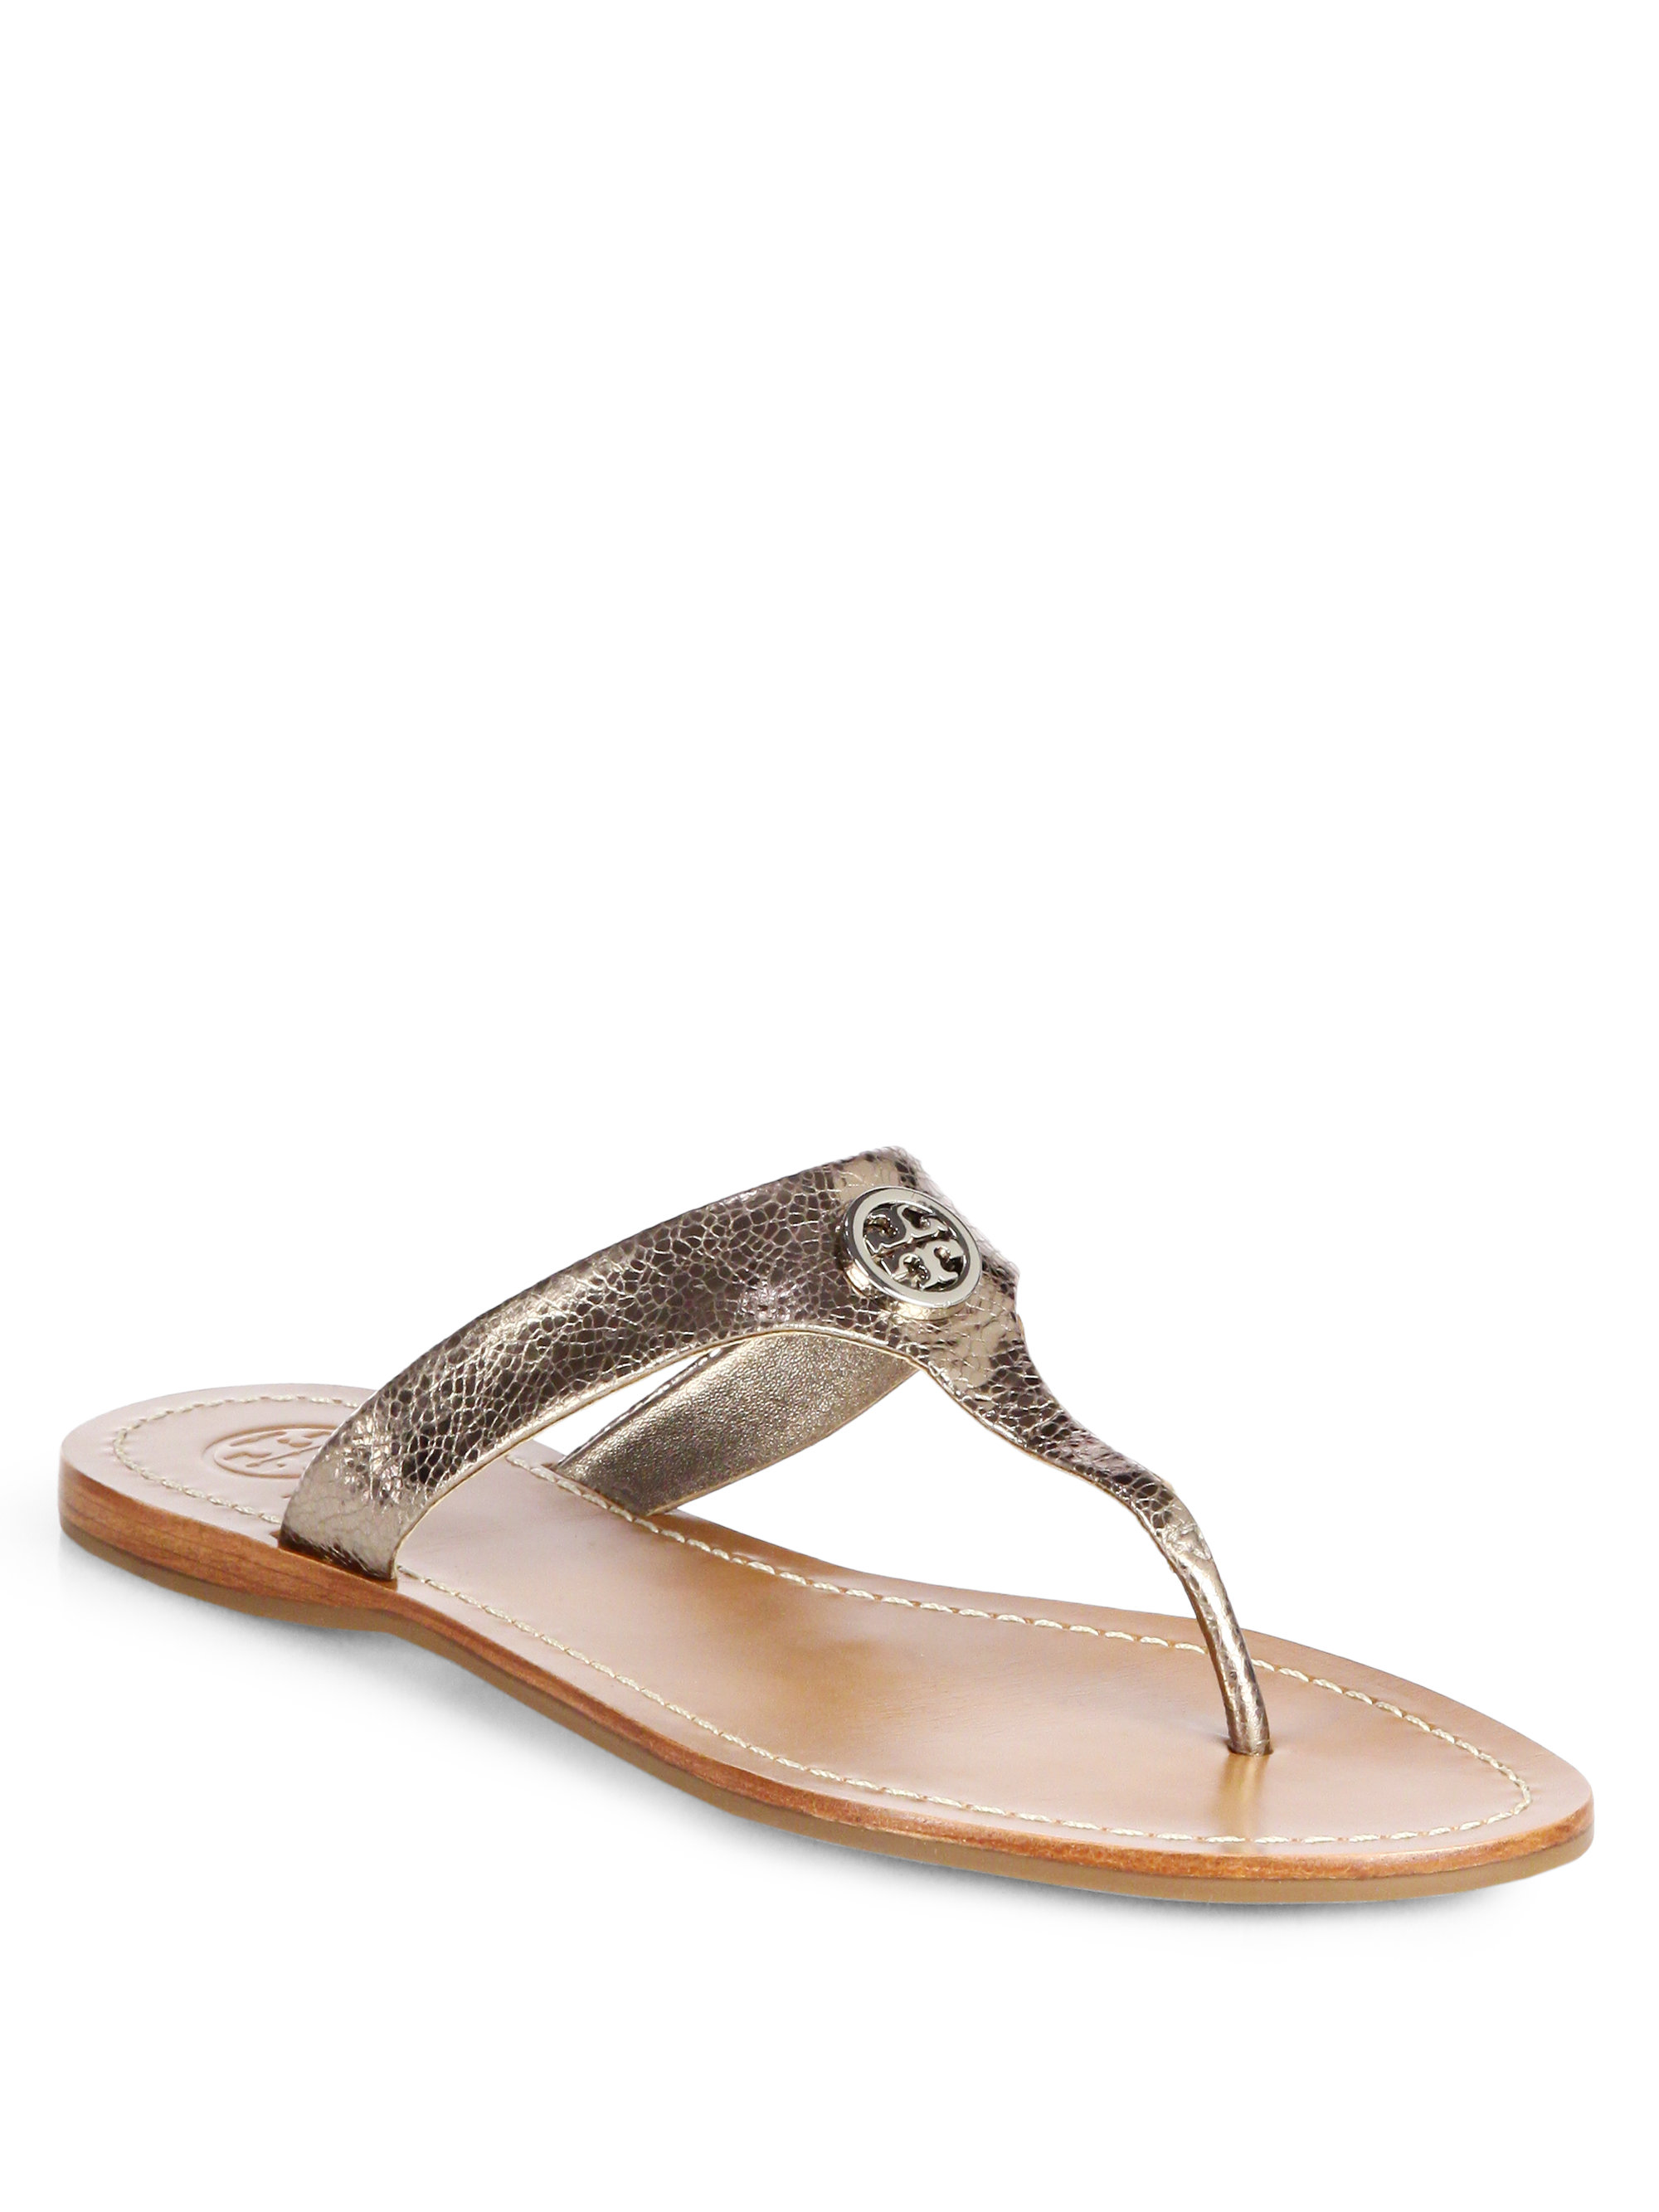 6fe945f7f43 Tory Burch Cameron Crackled Metallic Leather Thong Sandals in ...